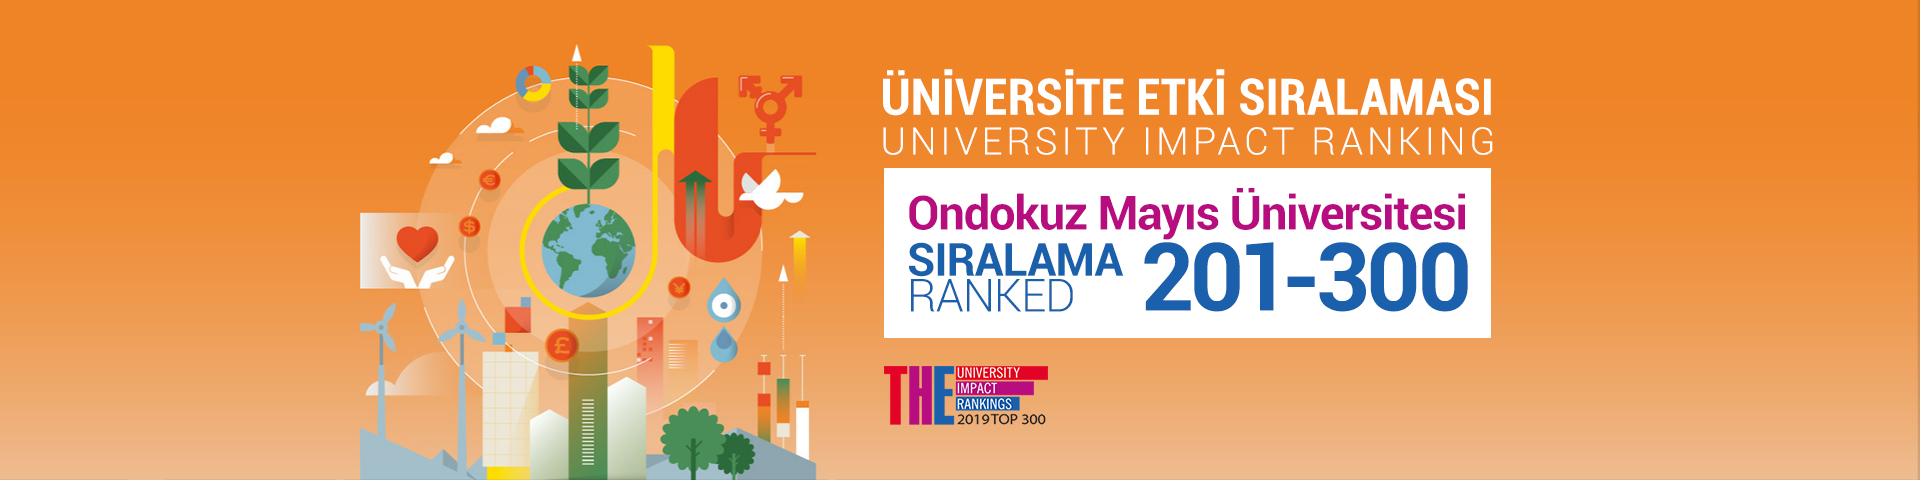 OMU Ranked 201 - 300 in the Overall 2019 THE University Impact Rankings